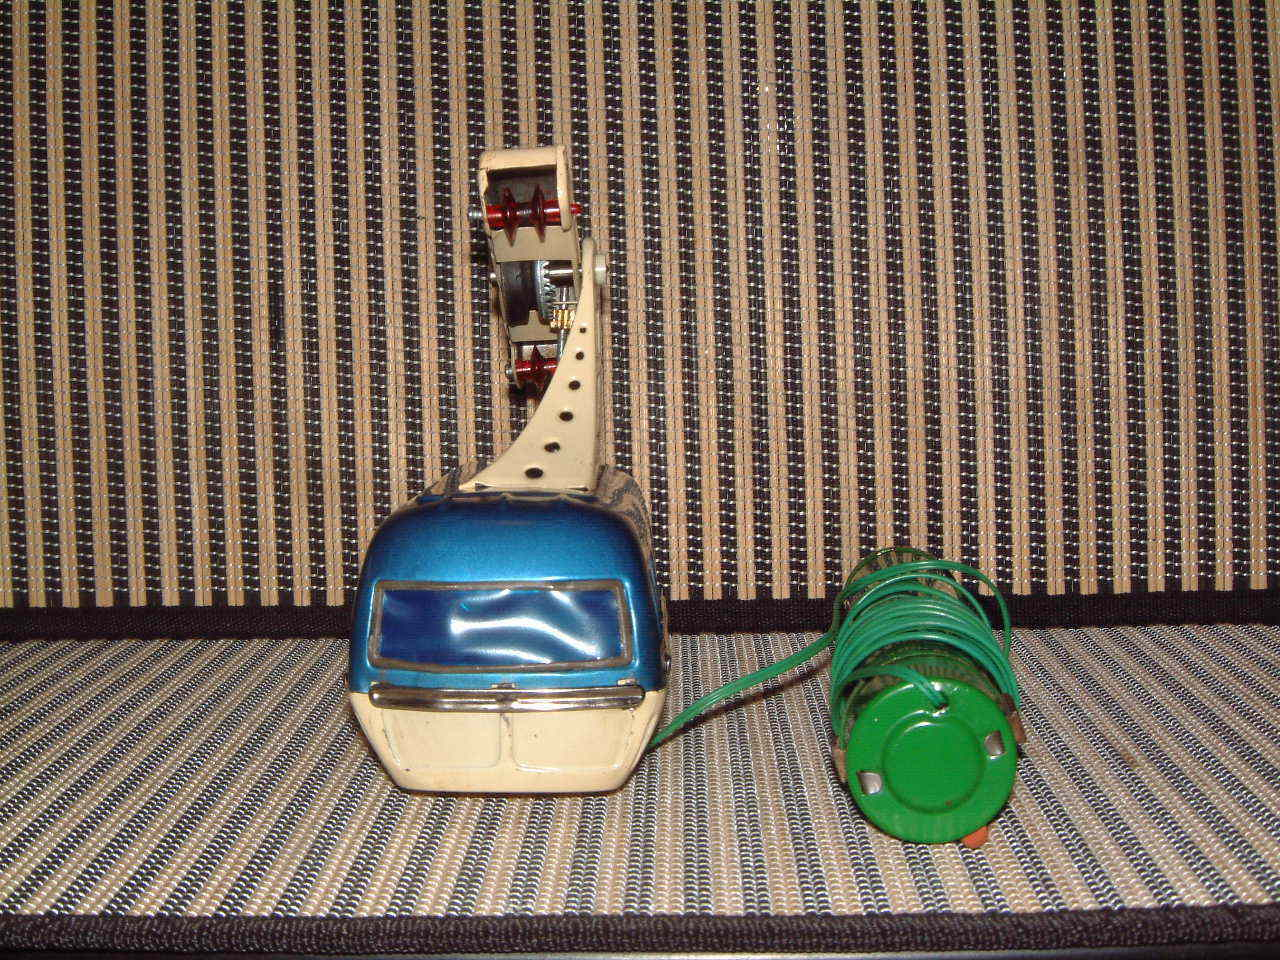 BANDAI RARE, RARE, RARE, FULLY WORKING, TIN  CABLE CAR  BATTERY OPERATED W CABLE & BOX  e2e213